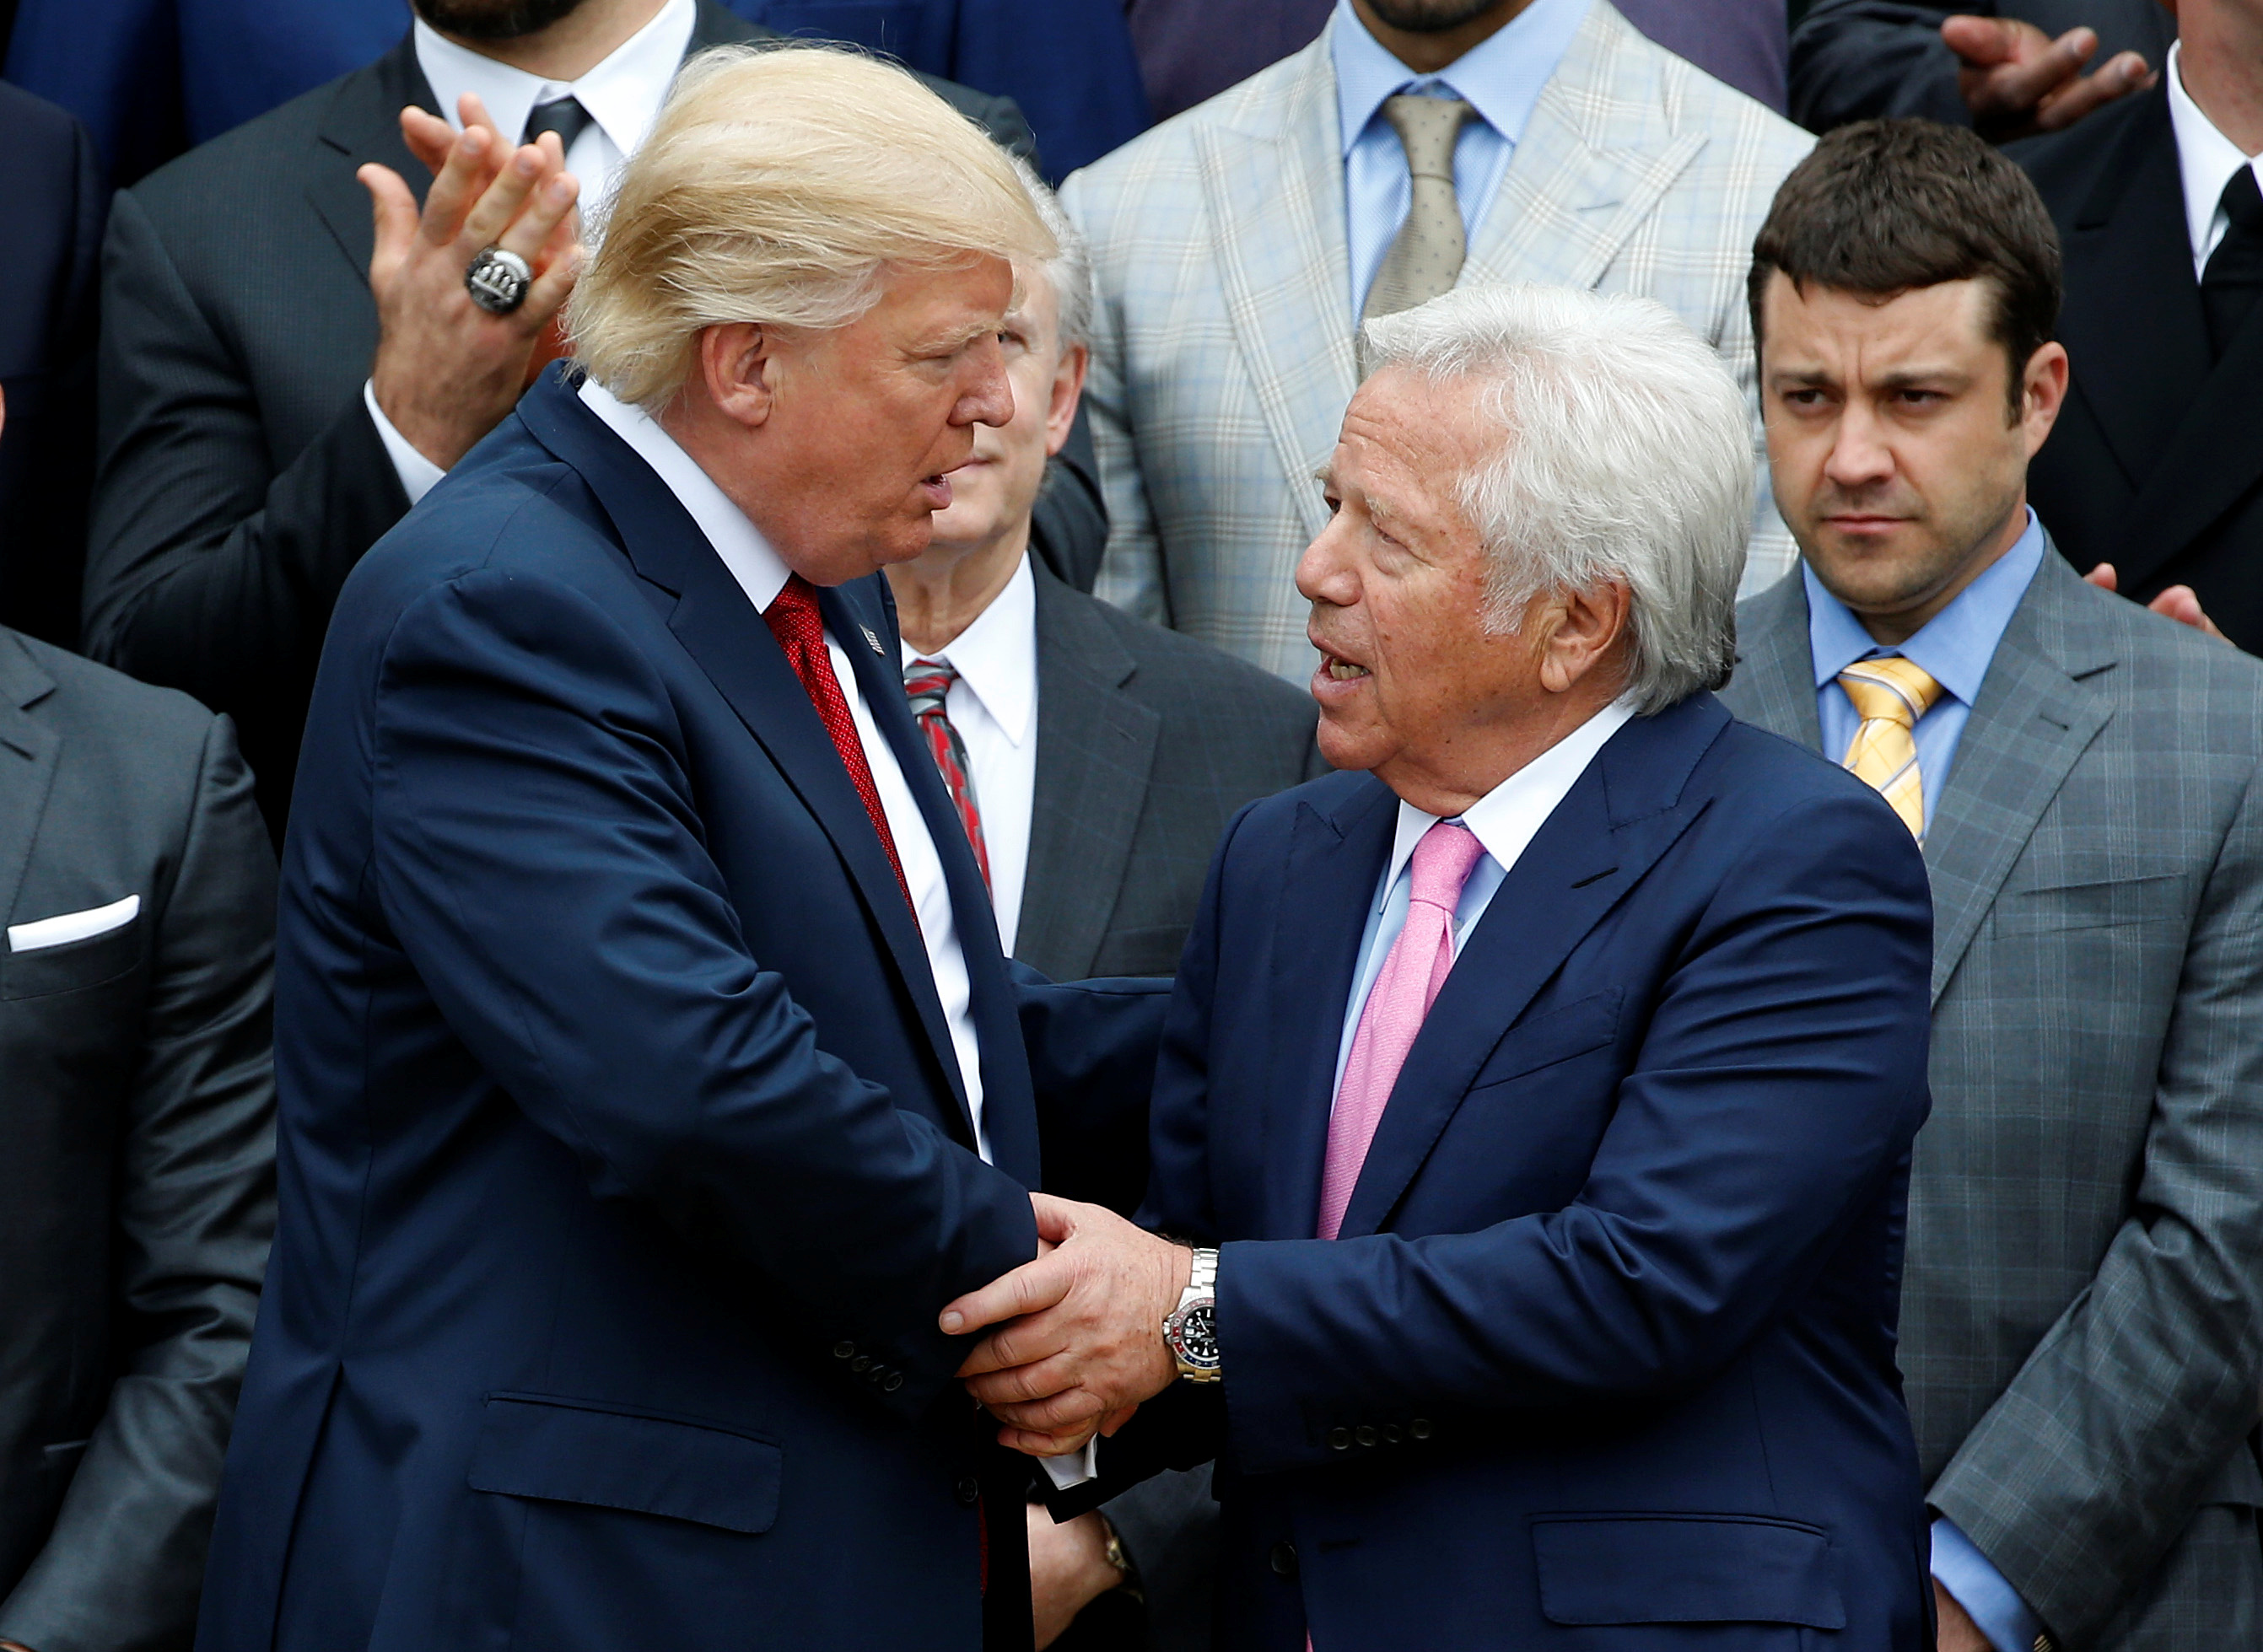 According to ESPN, Donald Trump was acting on behalf of Patriots owner Robert Kraft when he tried to offer Sen. Arlen Specter campaign money if he ended his investigation into Spygate. (REUTERS/Joshua Roberts)